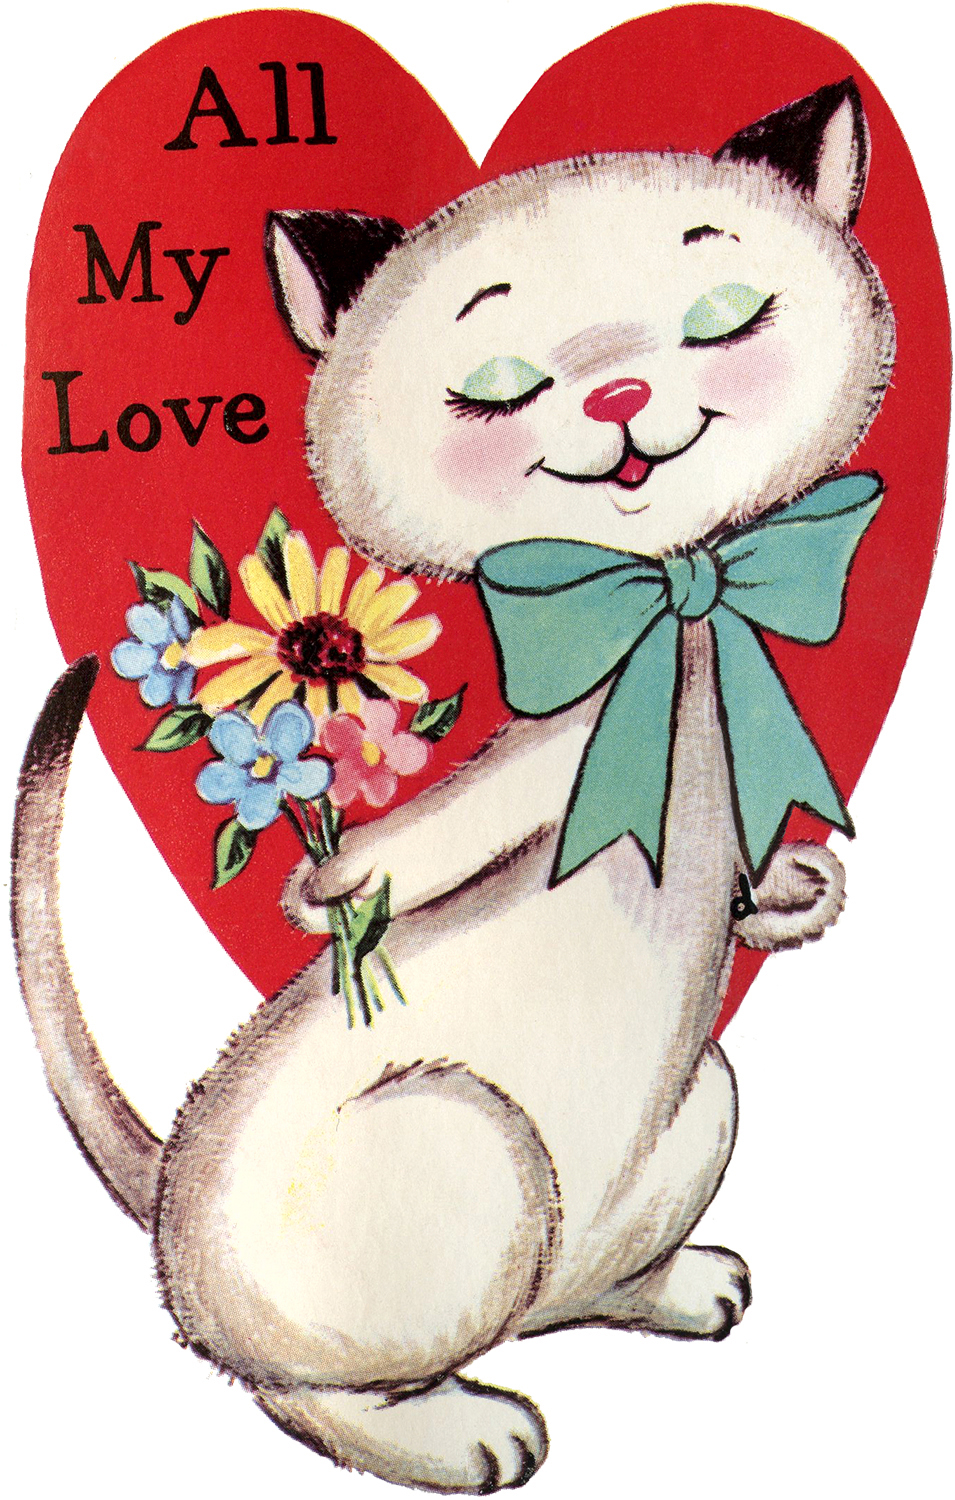 photograph regarding Free Printable Vintage Valentine Cards named 9 Retro Valentines with Pets! - The Graphics Fairy